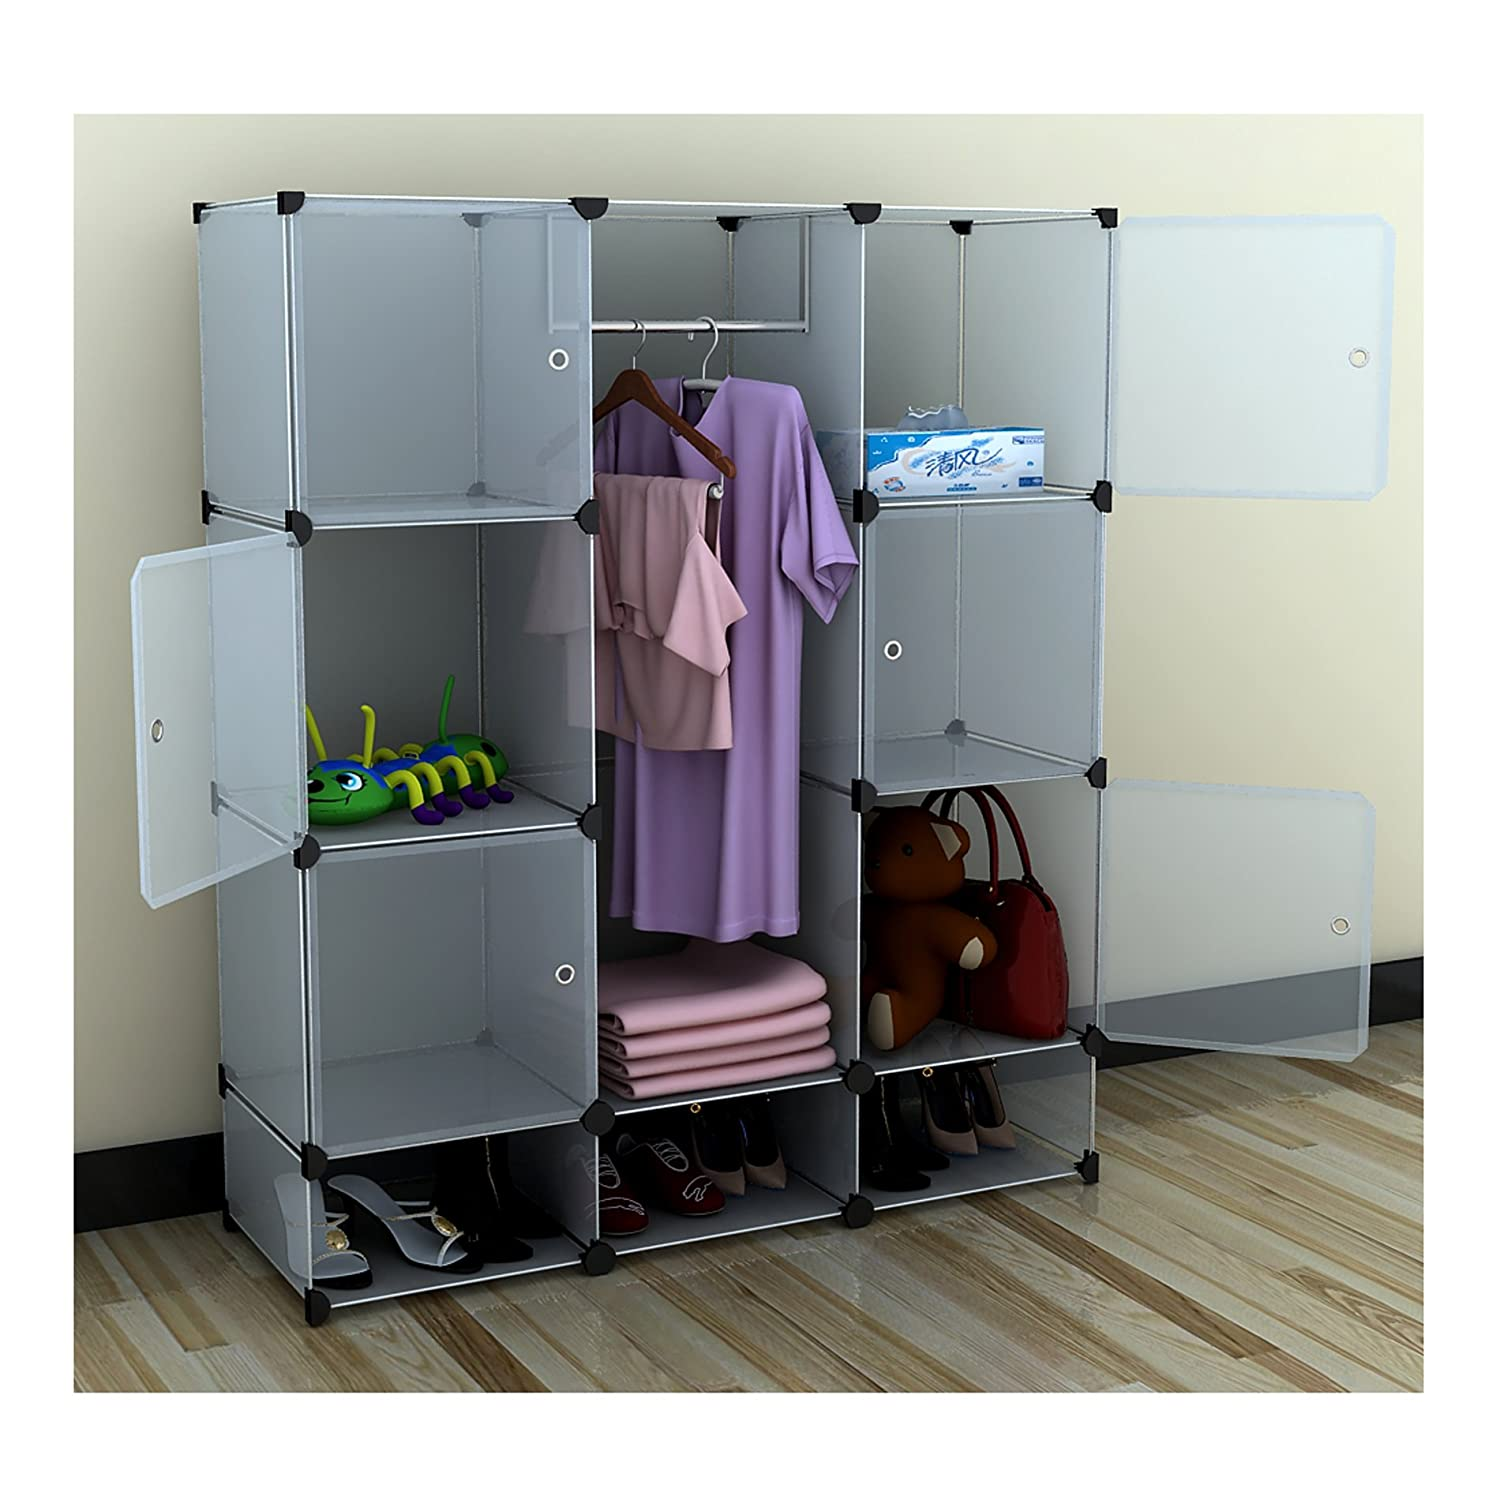 rack organizer quot clothes storage wardrobe for walmart at home closets with target closet portable